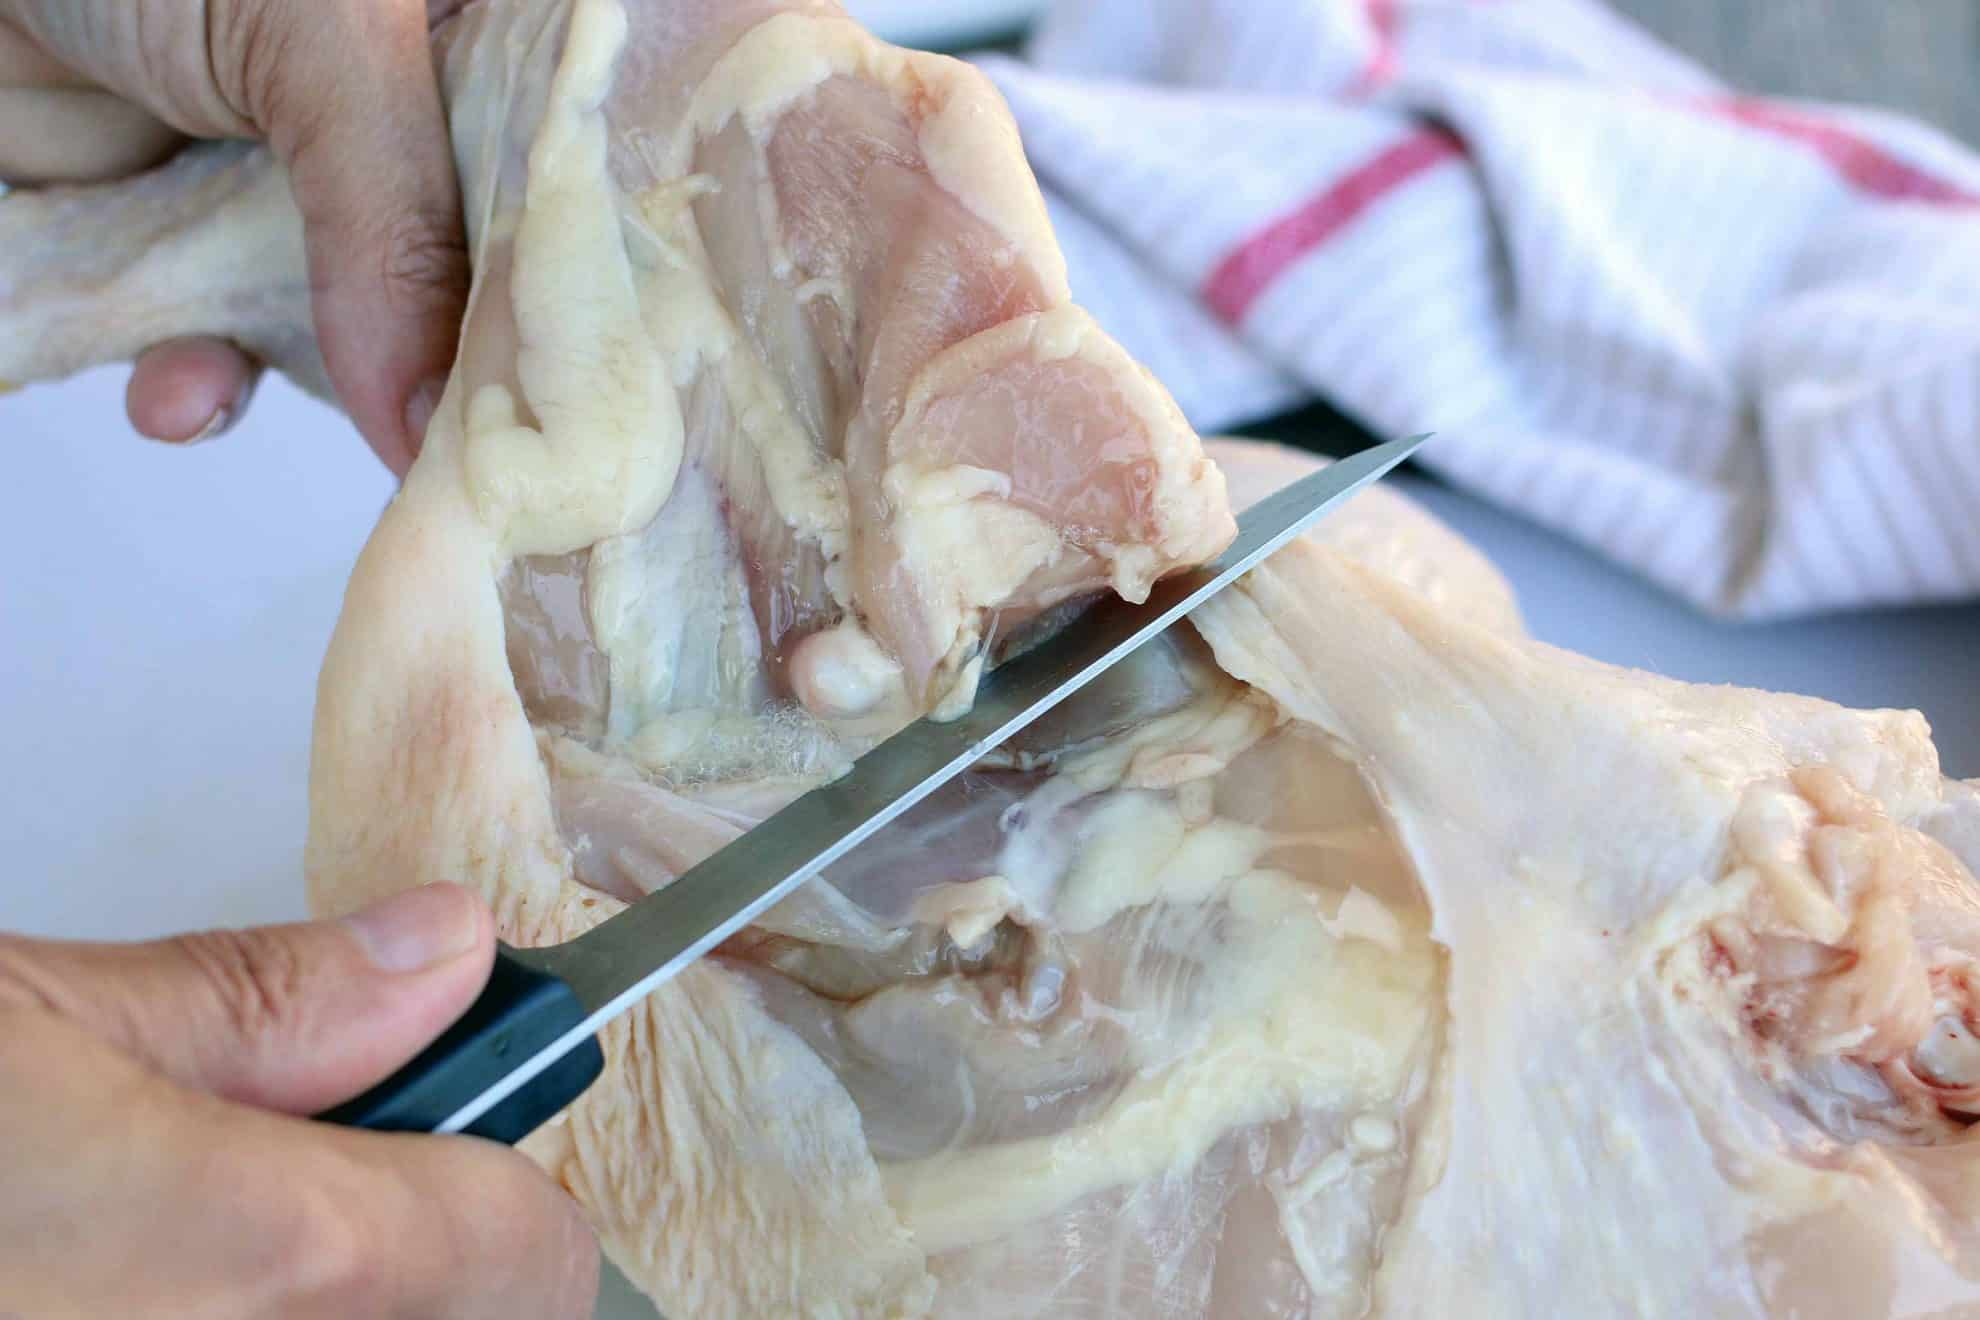 Slicing through the skin to remove the leg quarter from a whole chicken